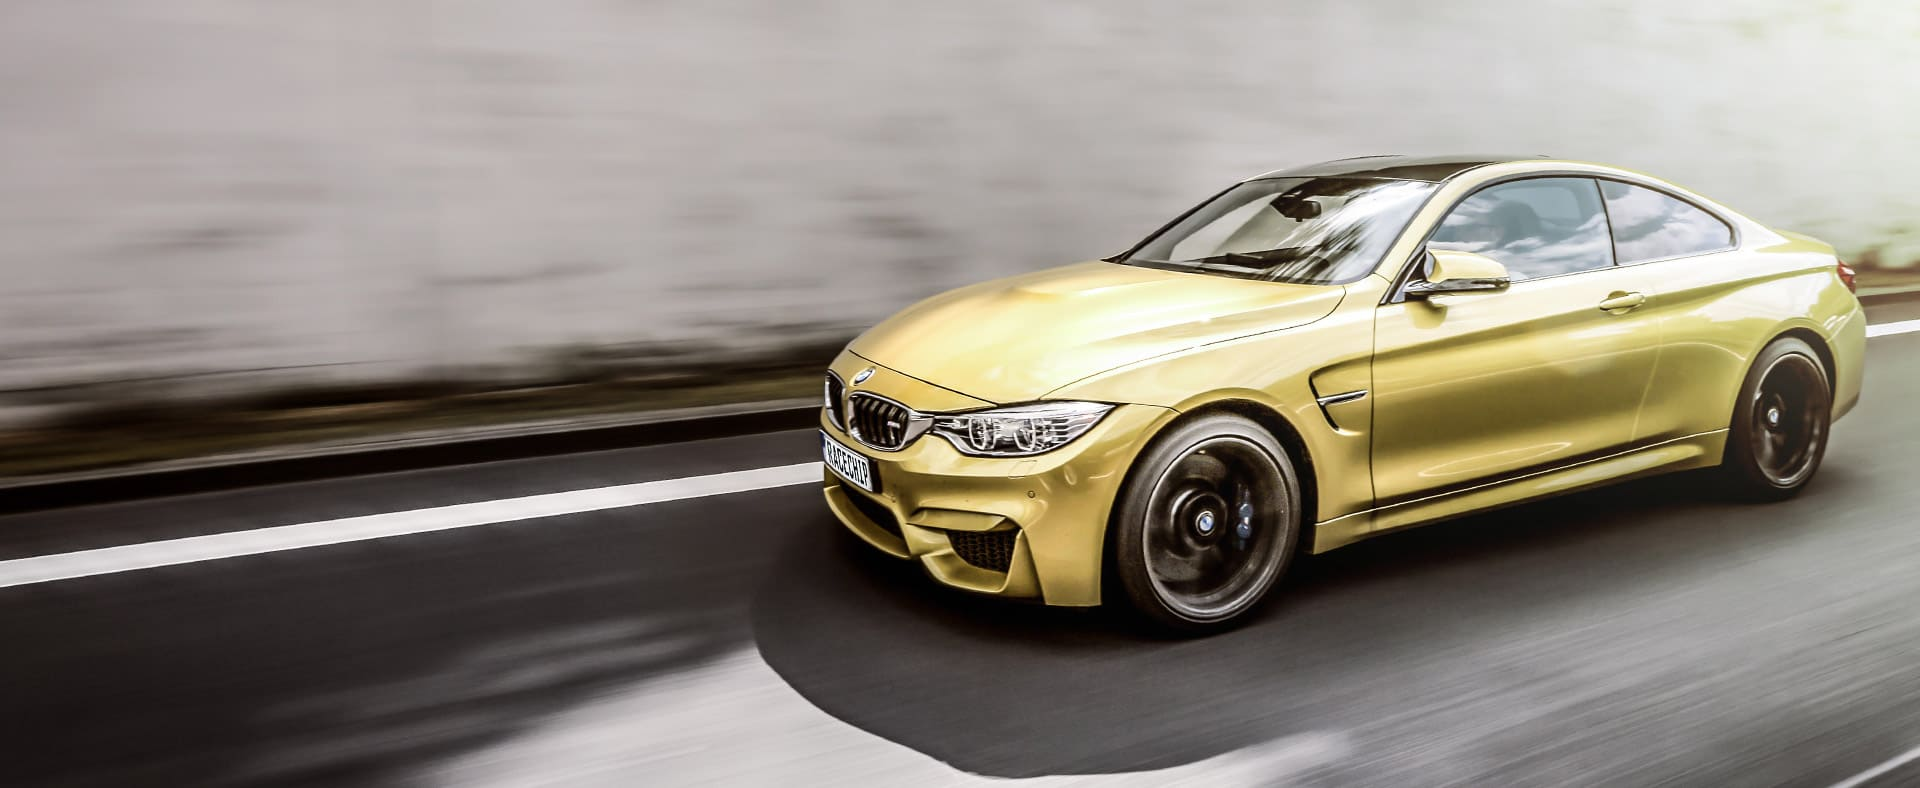 The new BMW M4 - Chiptuning by RaceChip